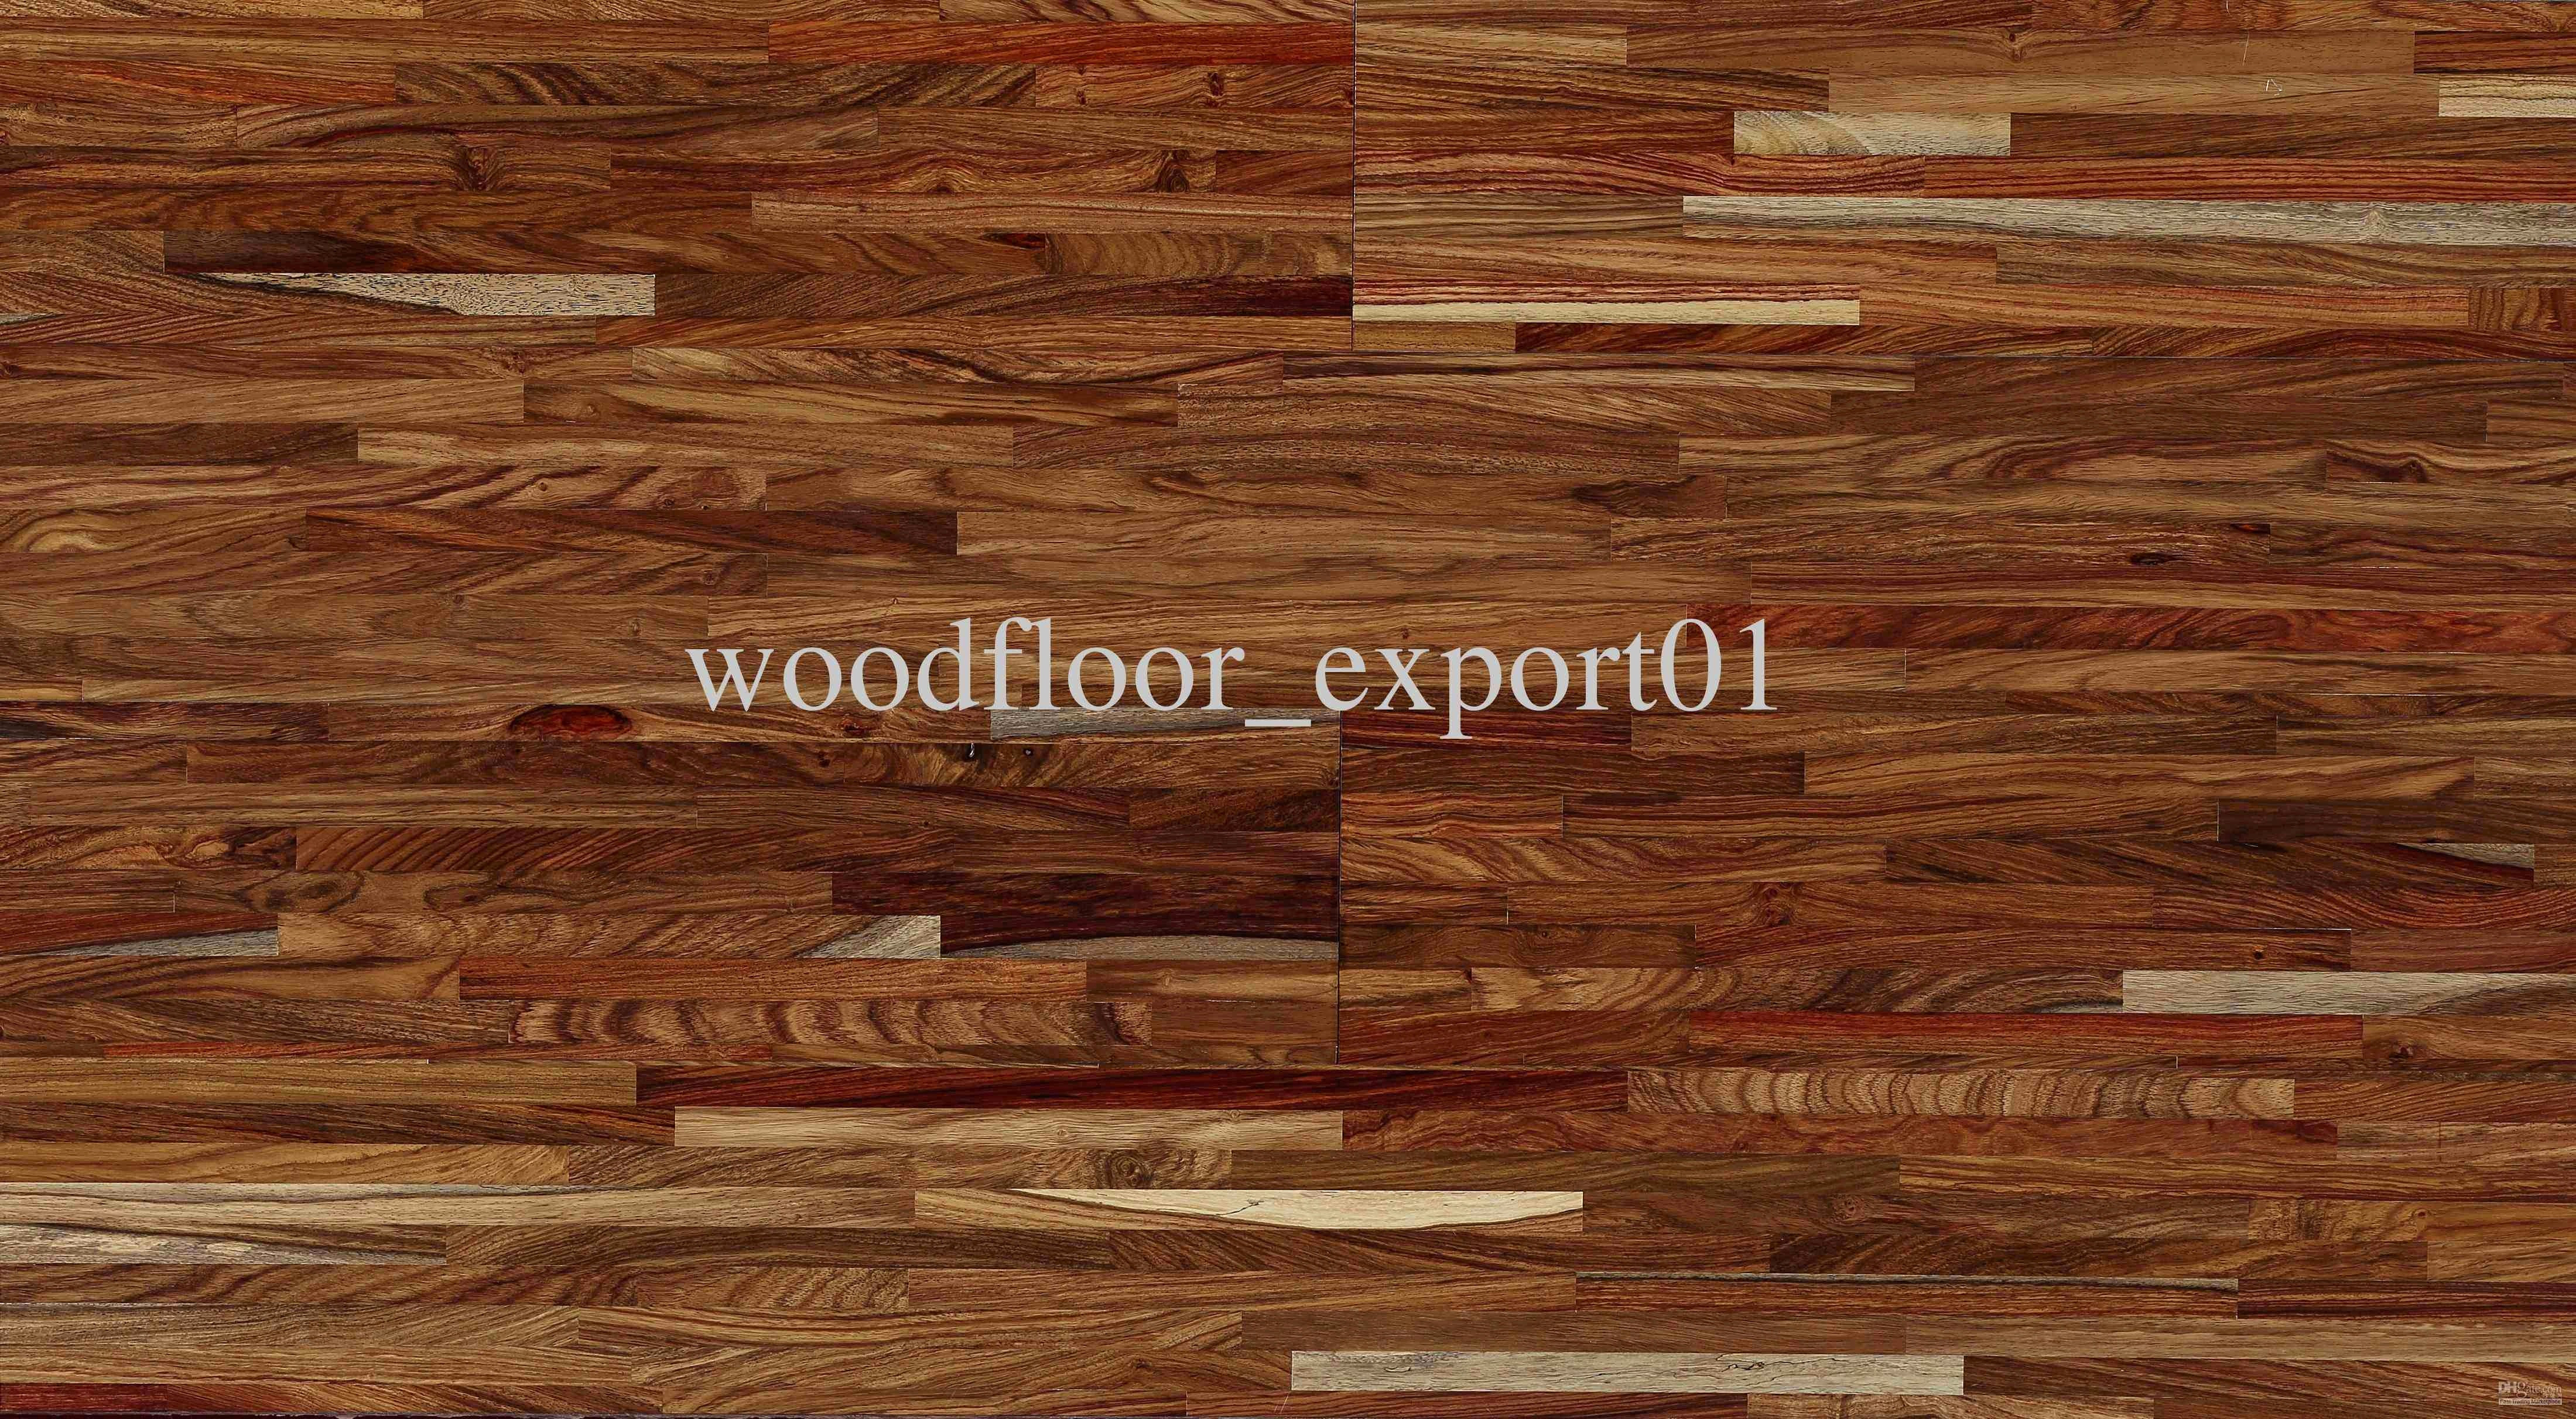 5 16 engineered hardwood flooring of 17 best of install hardwood floor image dizpos com pertaining to install hardwood floor best of 50 unique hardwood floor installers near me graphics 50 s images